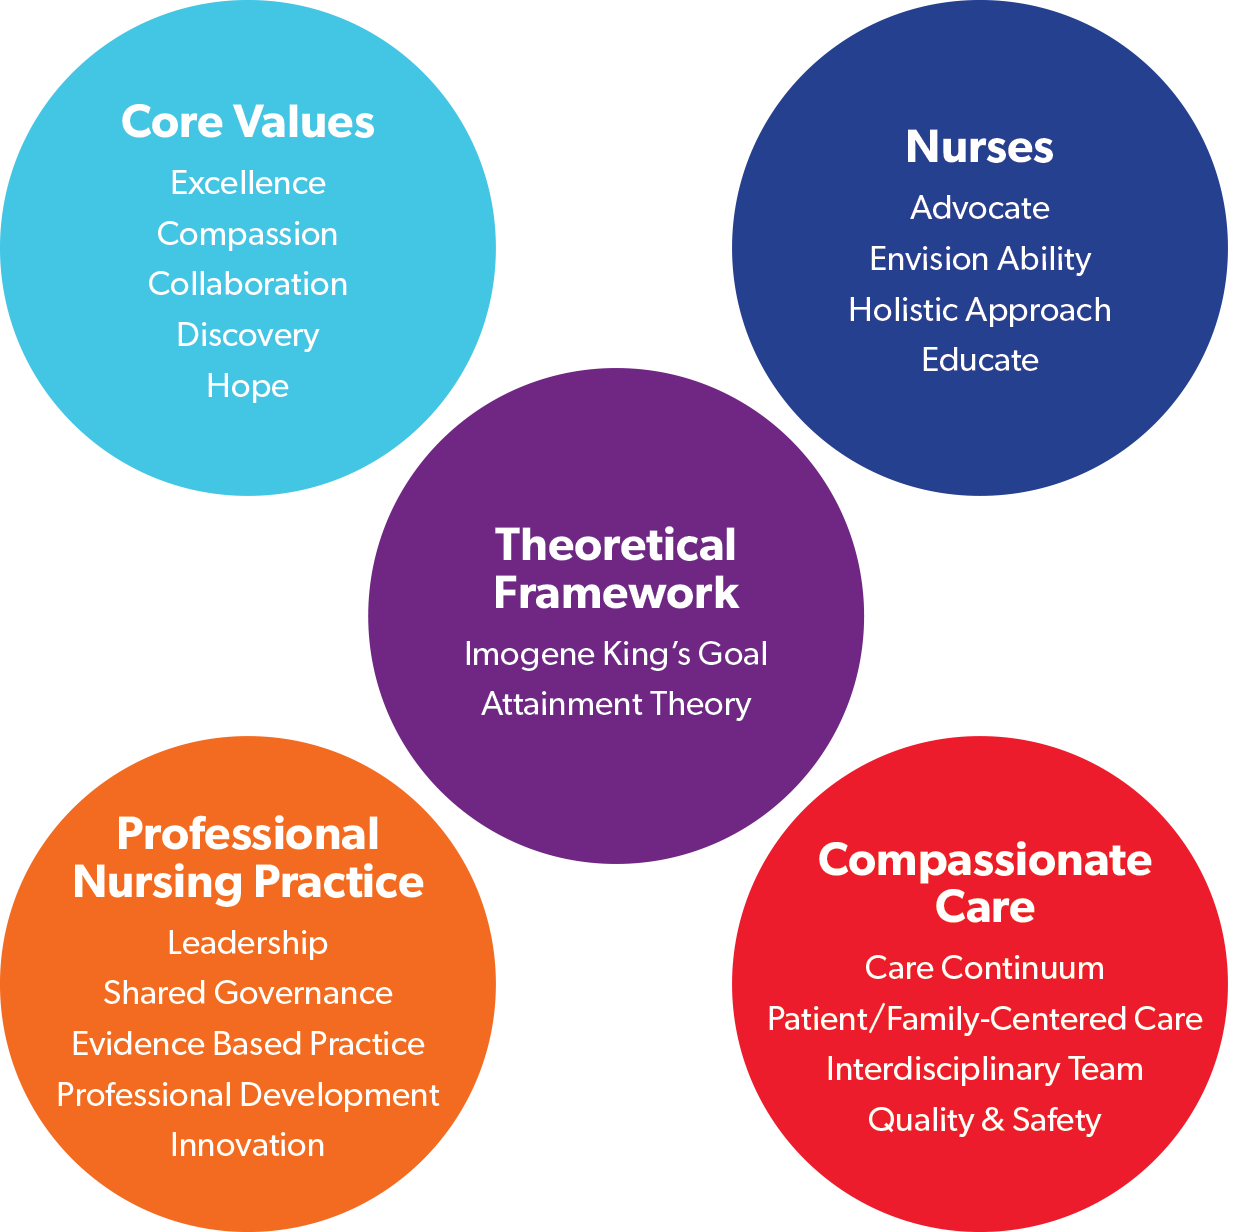 Nursing Values at Shirley Ryan AbilityLab